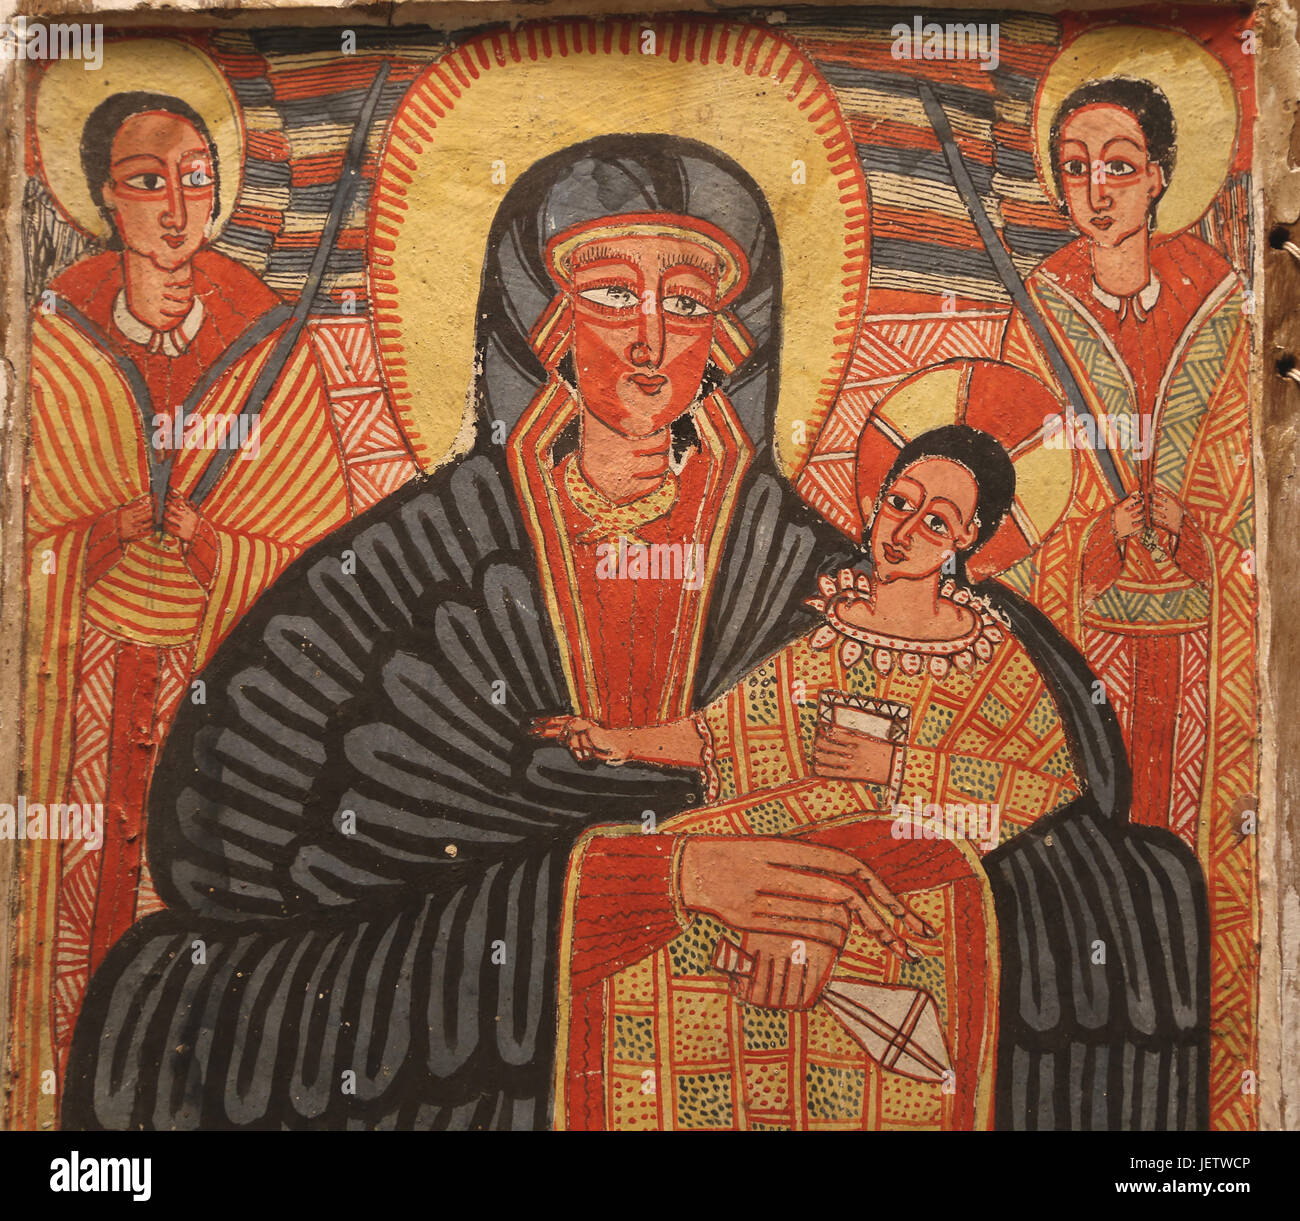 Triptych with Mary, scenes of the life of Jesus and Saints. Ethiopian Christian art. End of 17th Century. Paint Stock Photo